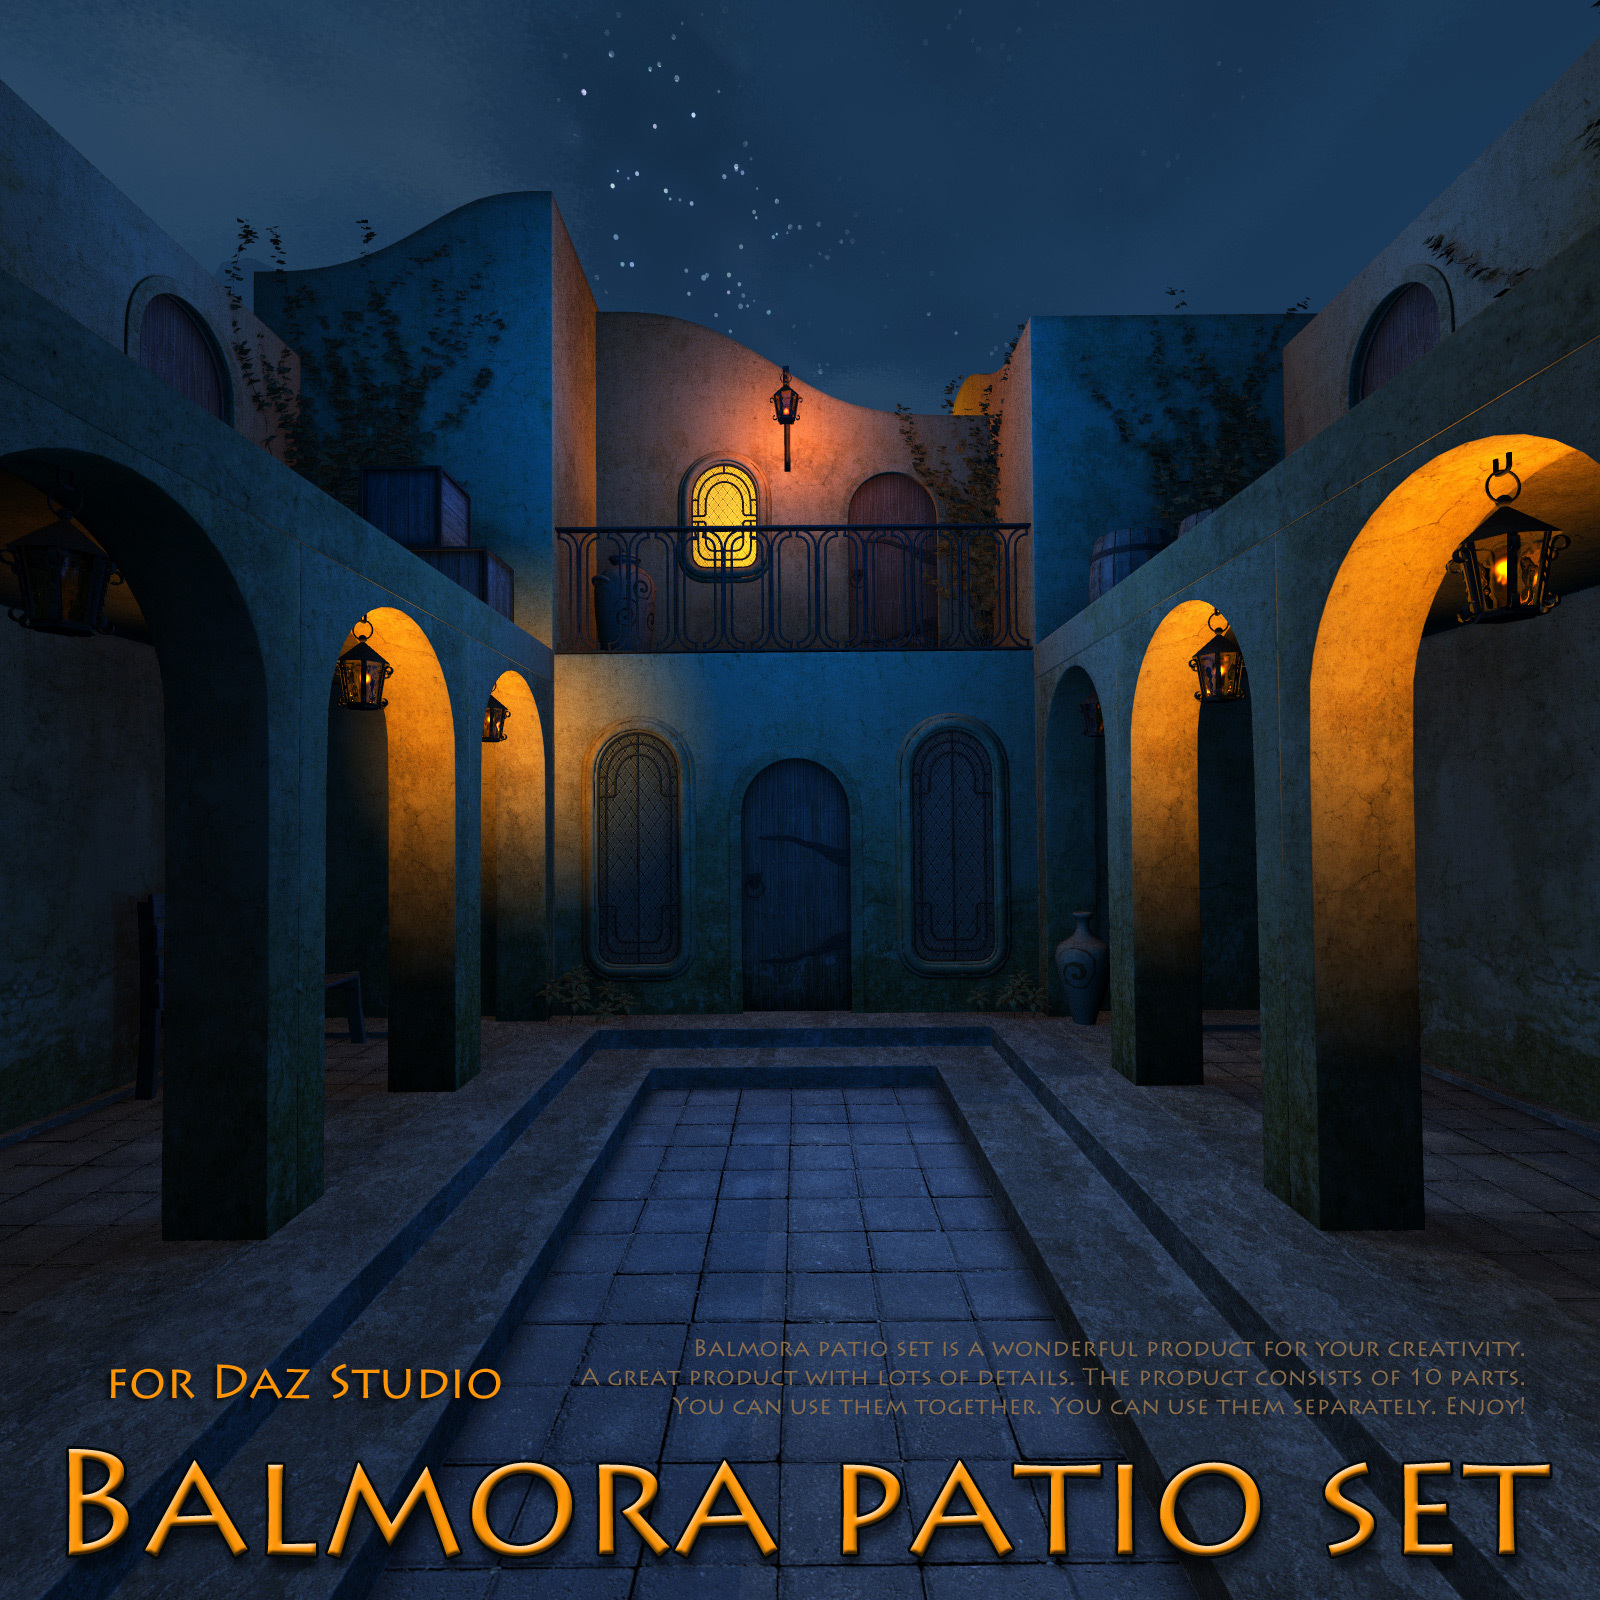 Balmora patio set for Daz Studio by 1971s